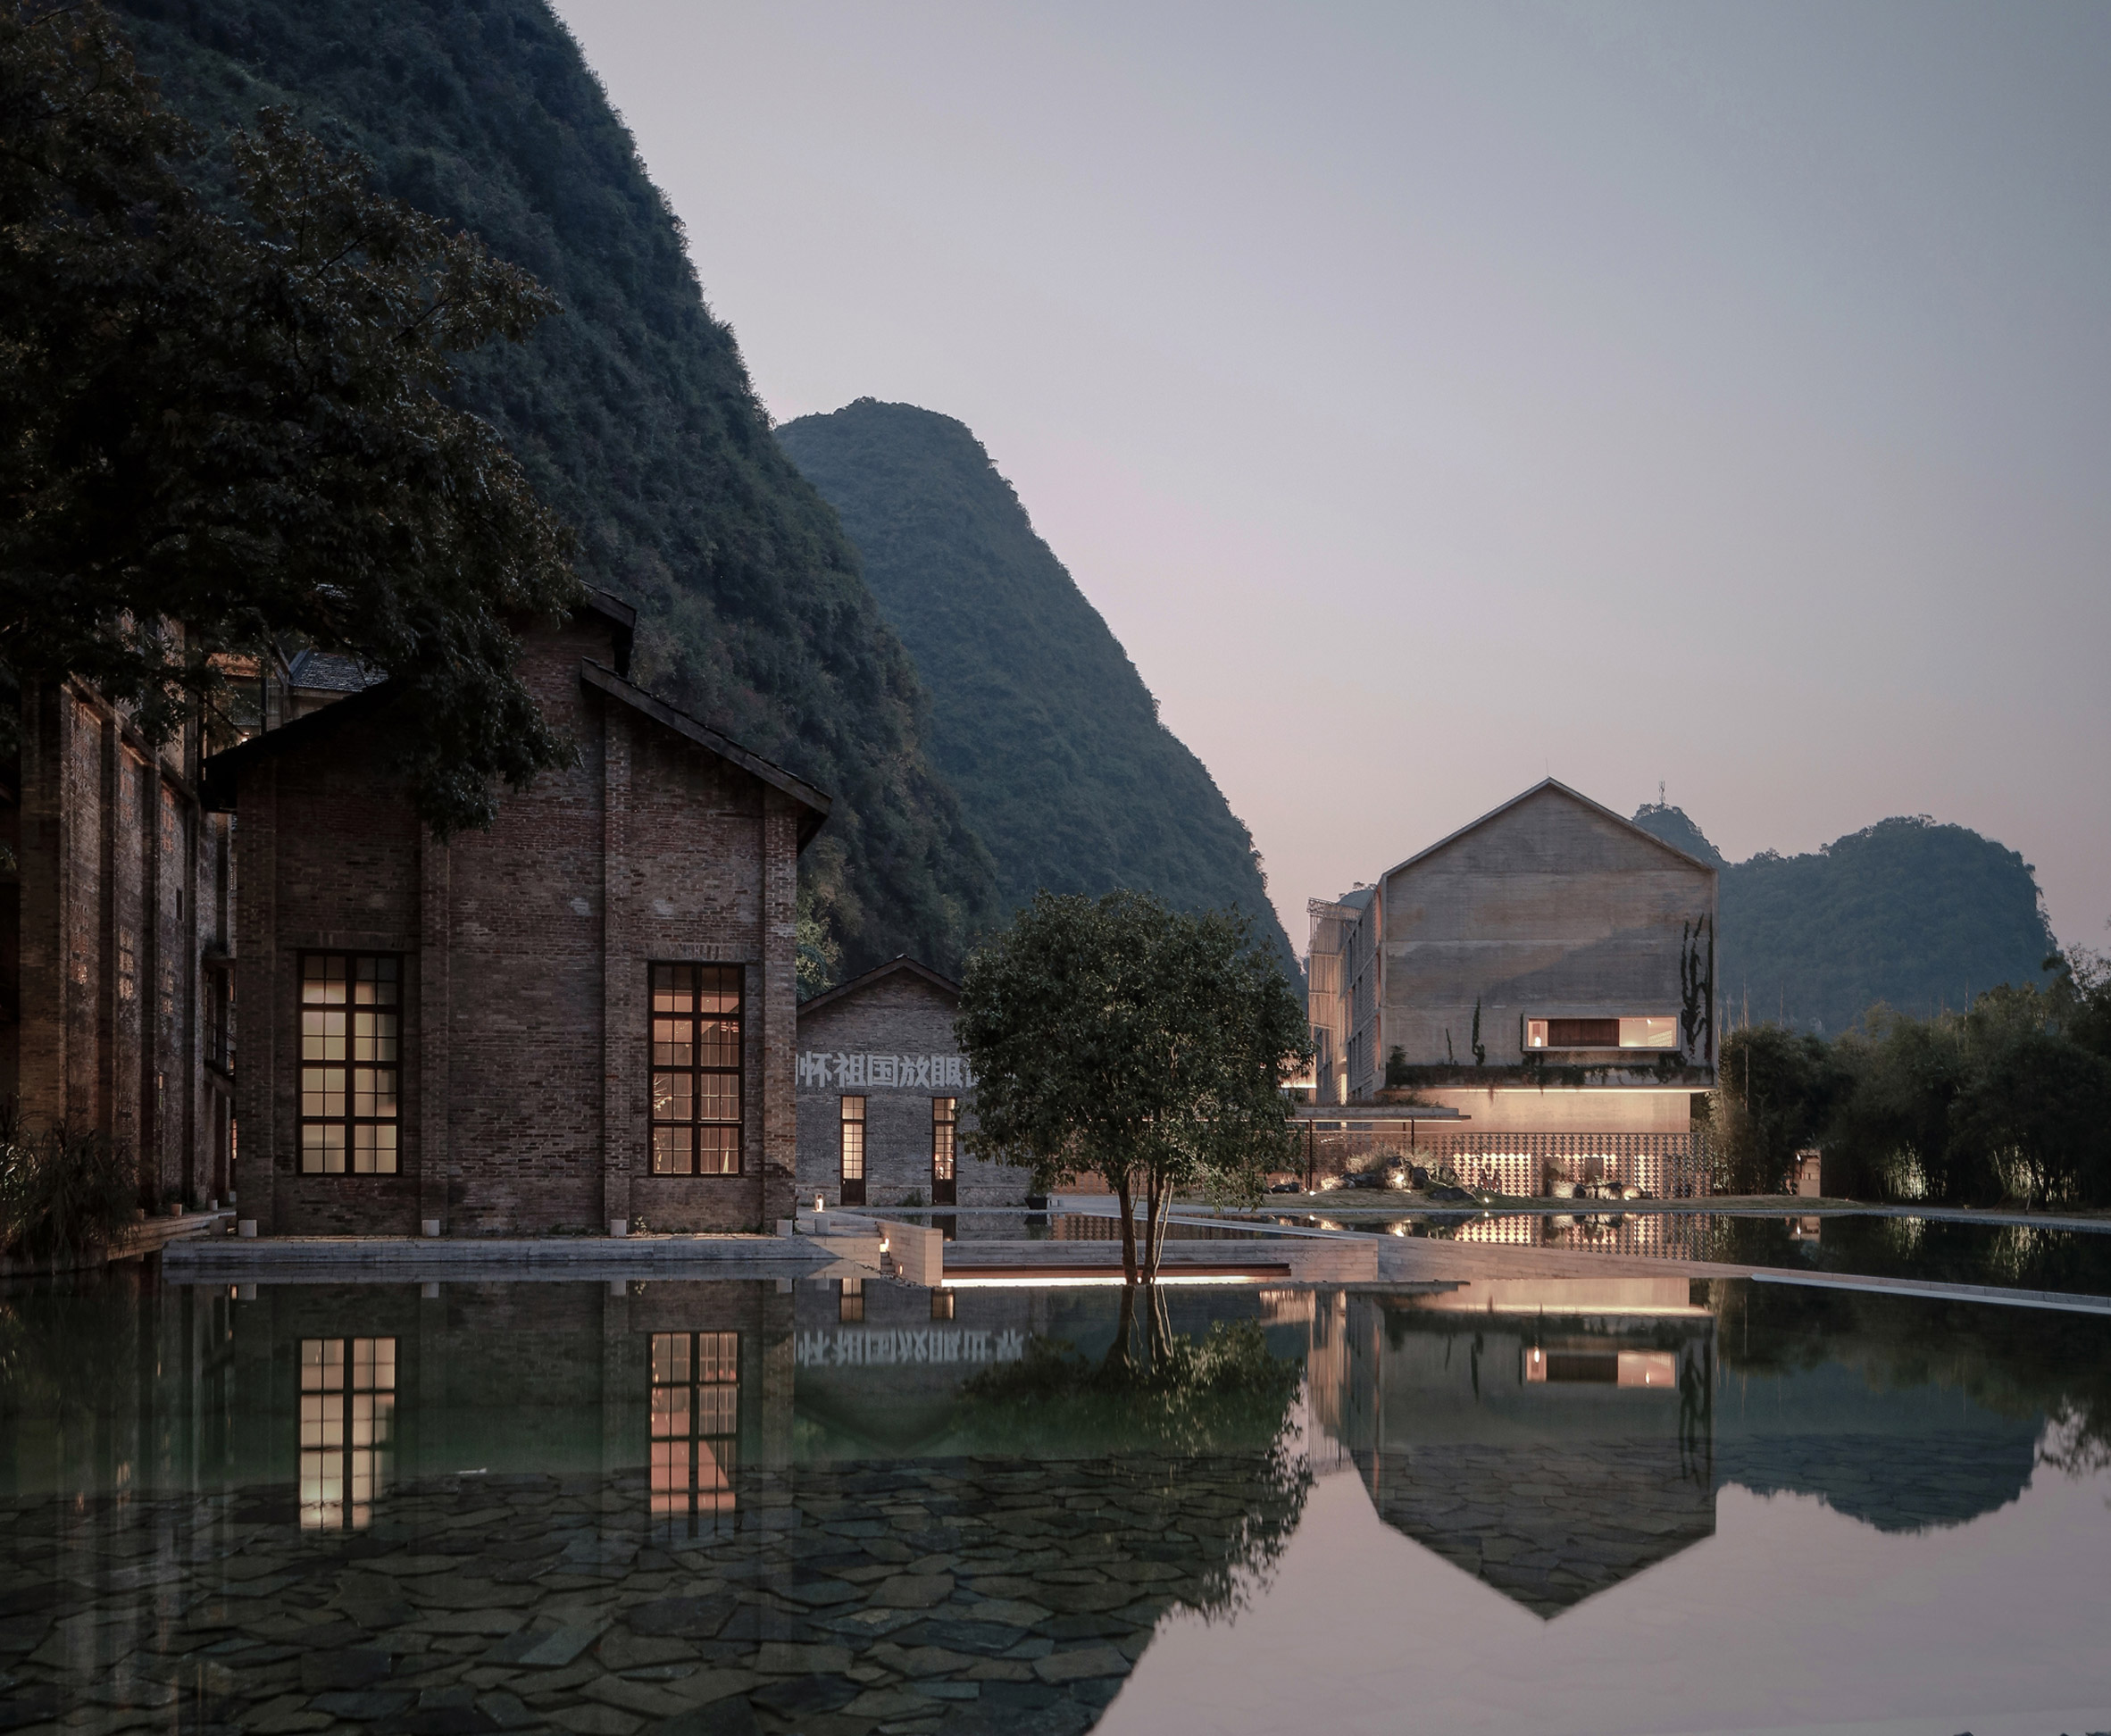 Alila Yangshuo was named the Ultimate Winner of the AHEAD Global awards, which were held at the Ham Yard Hotel in London